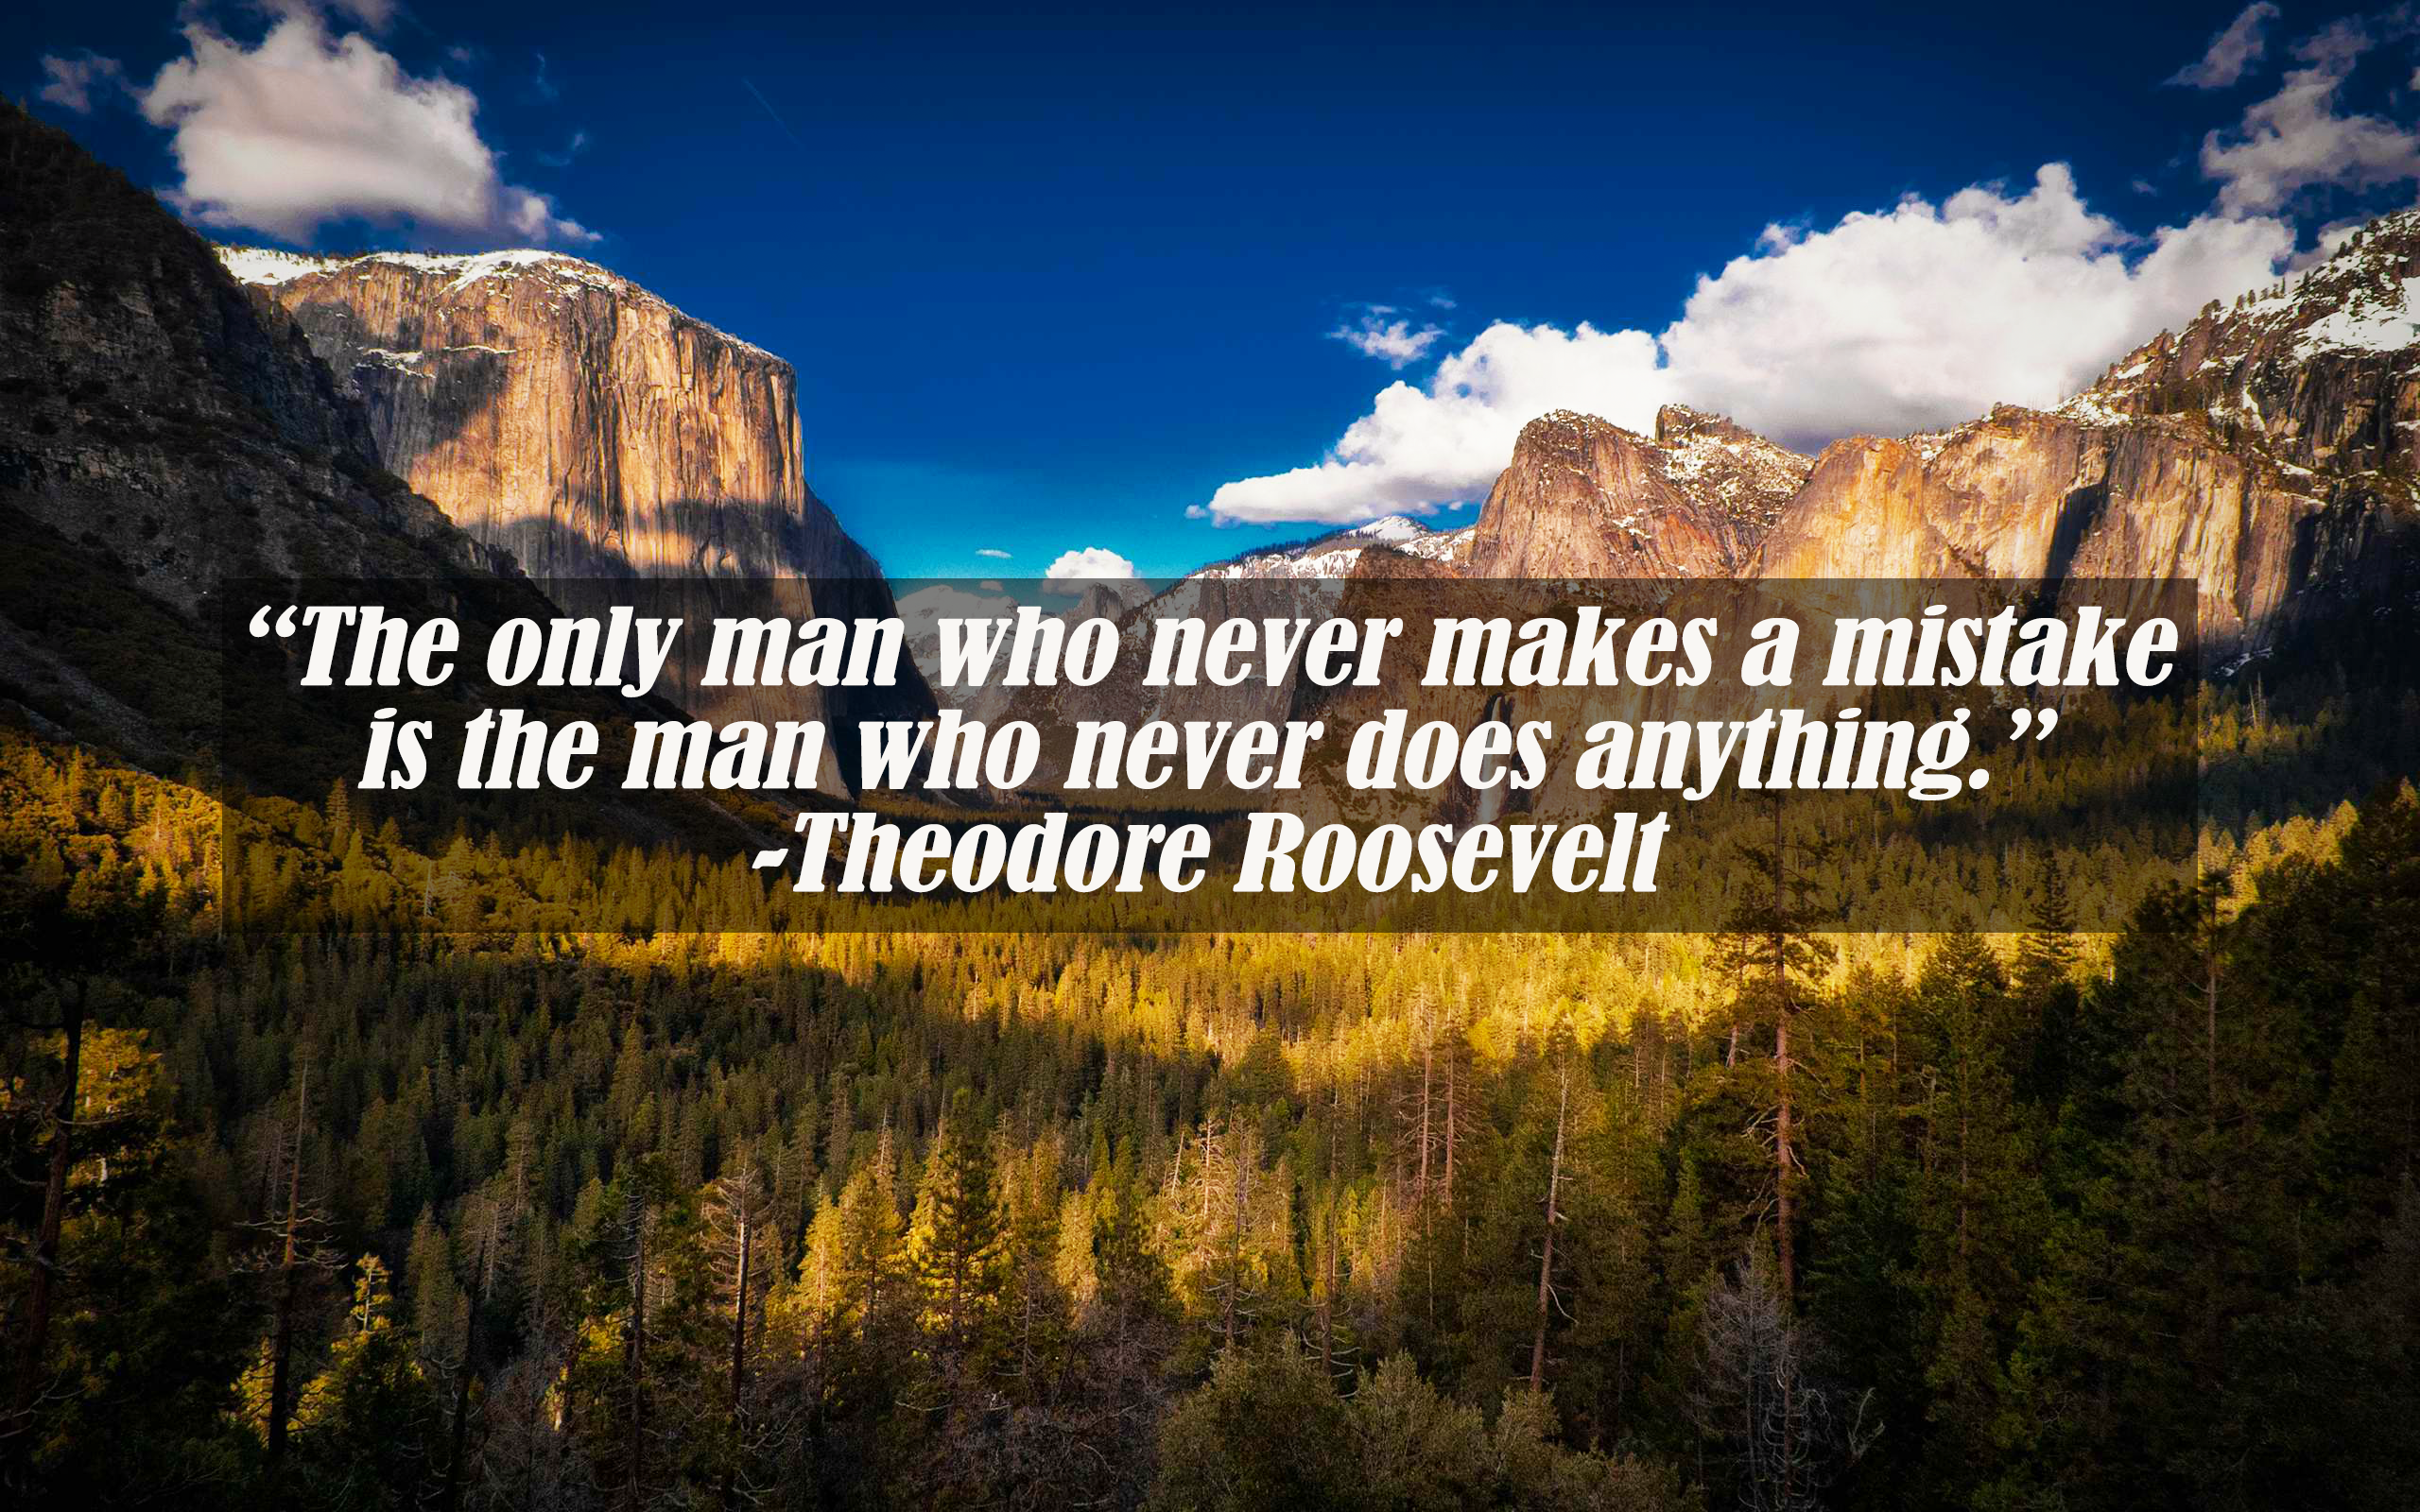 [Image] A motto from Theodore Roosevelt on overcoming failure